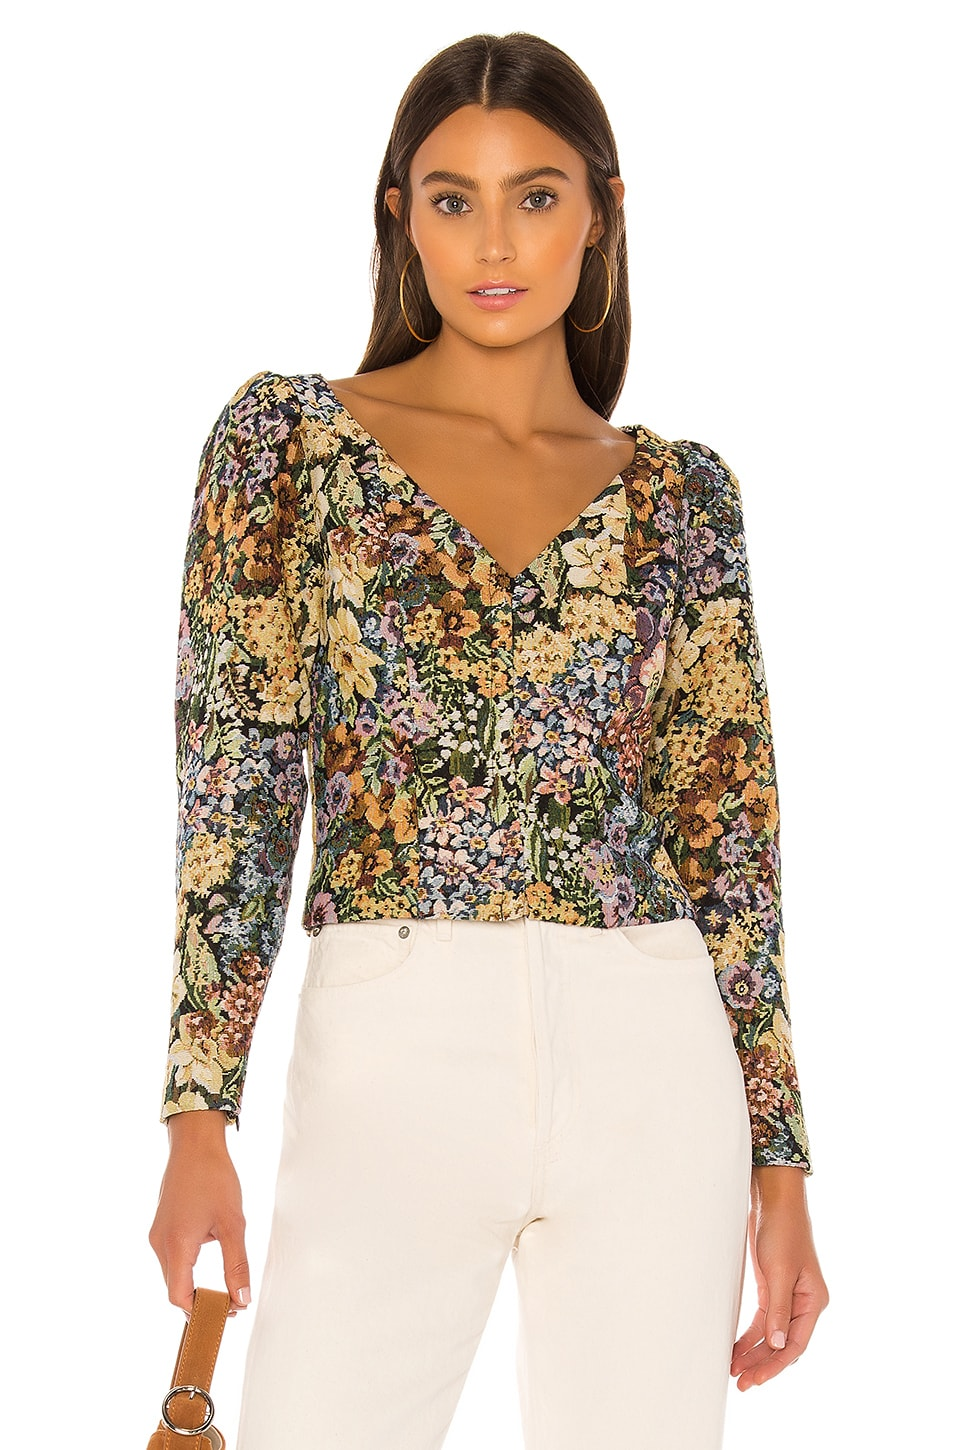 MAJORELLE Samson Top in Autumn Multi